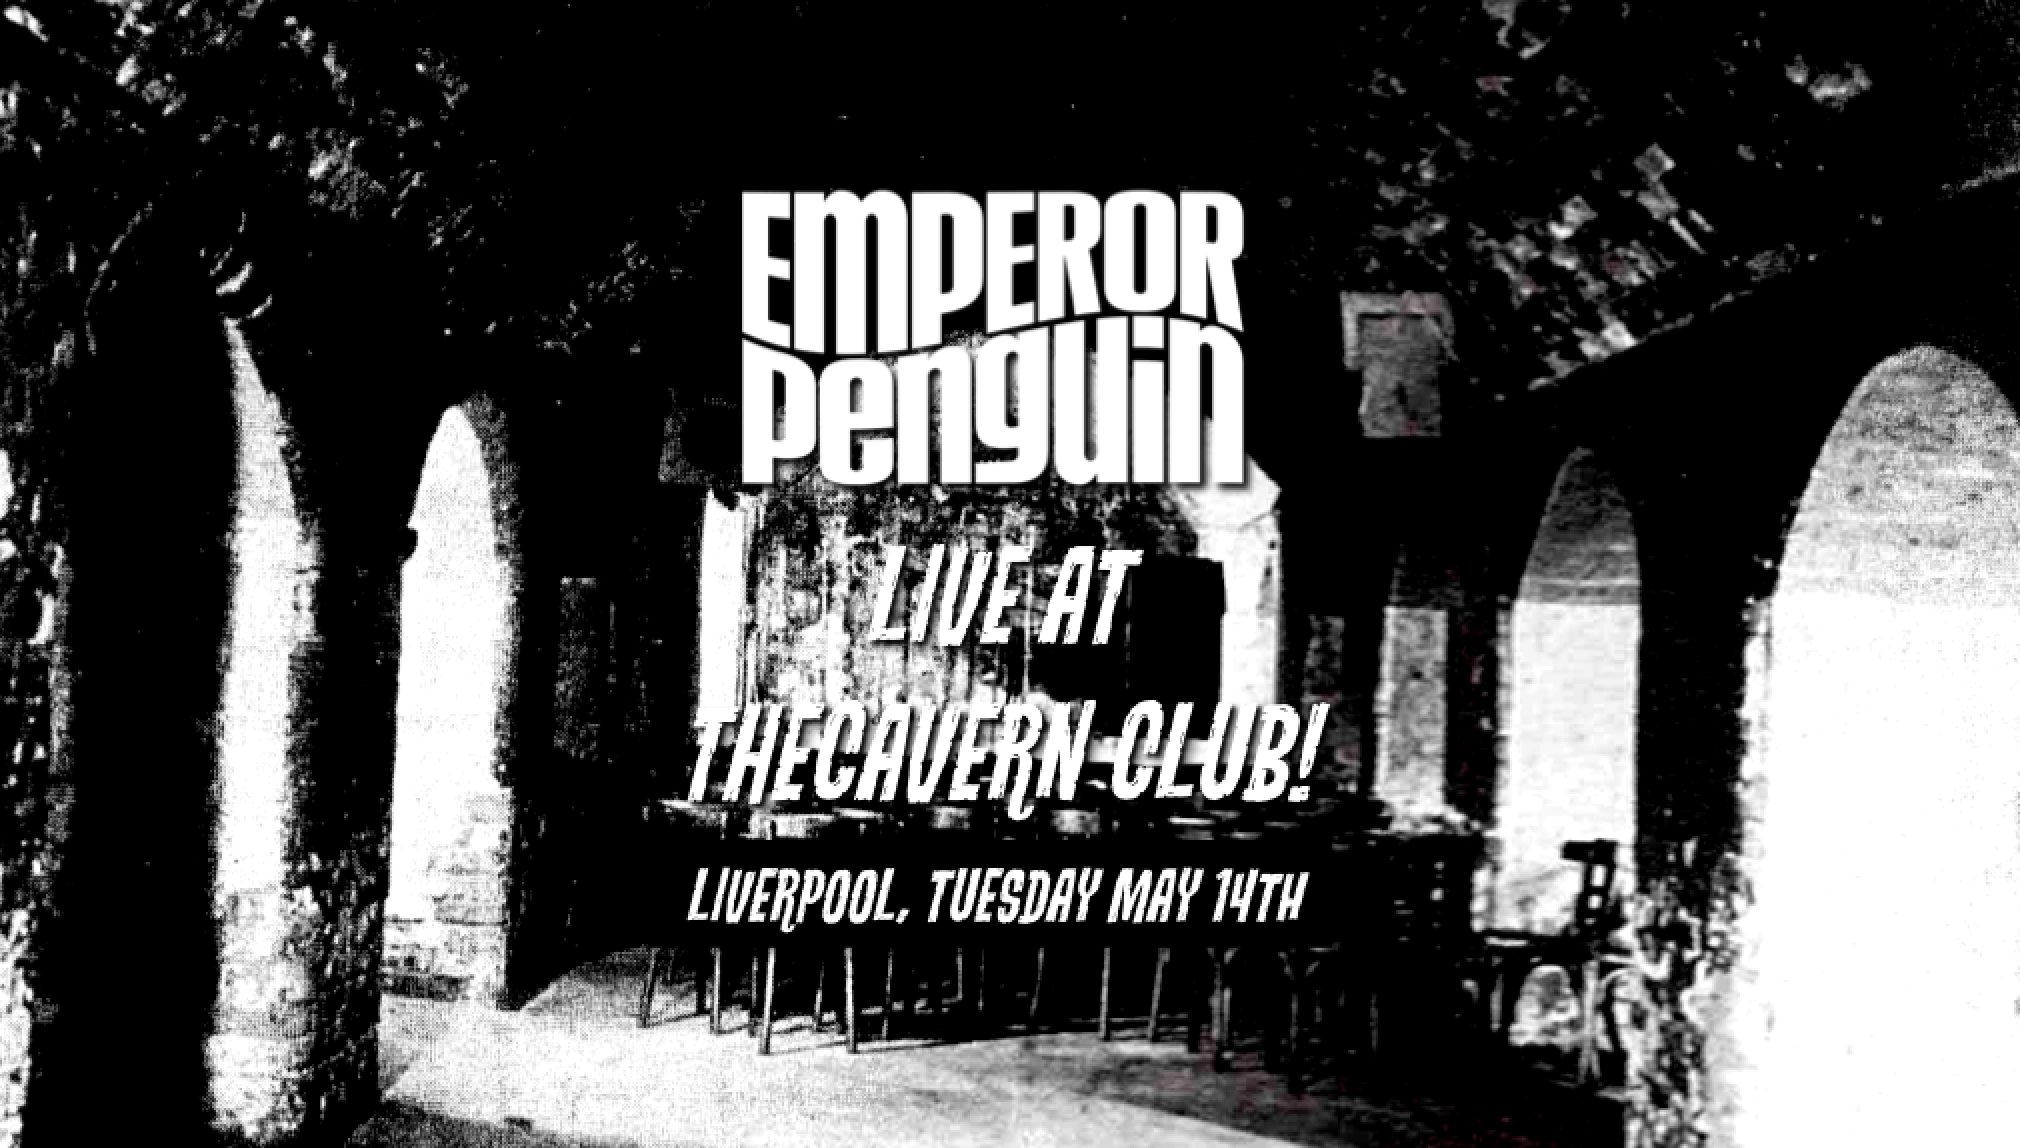 On Tuesday May 14th we return to Liverpool's legendary Cavern Club, joining a load of great bands as part of the International Pop Overthrow 2019 Festival. Free entry, many fine bands, and us. What more could you ask, music lovers?